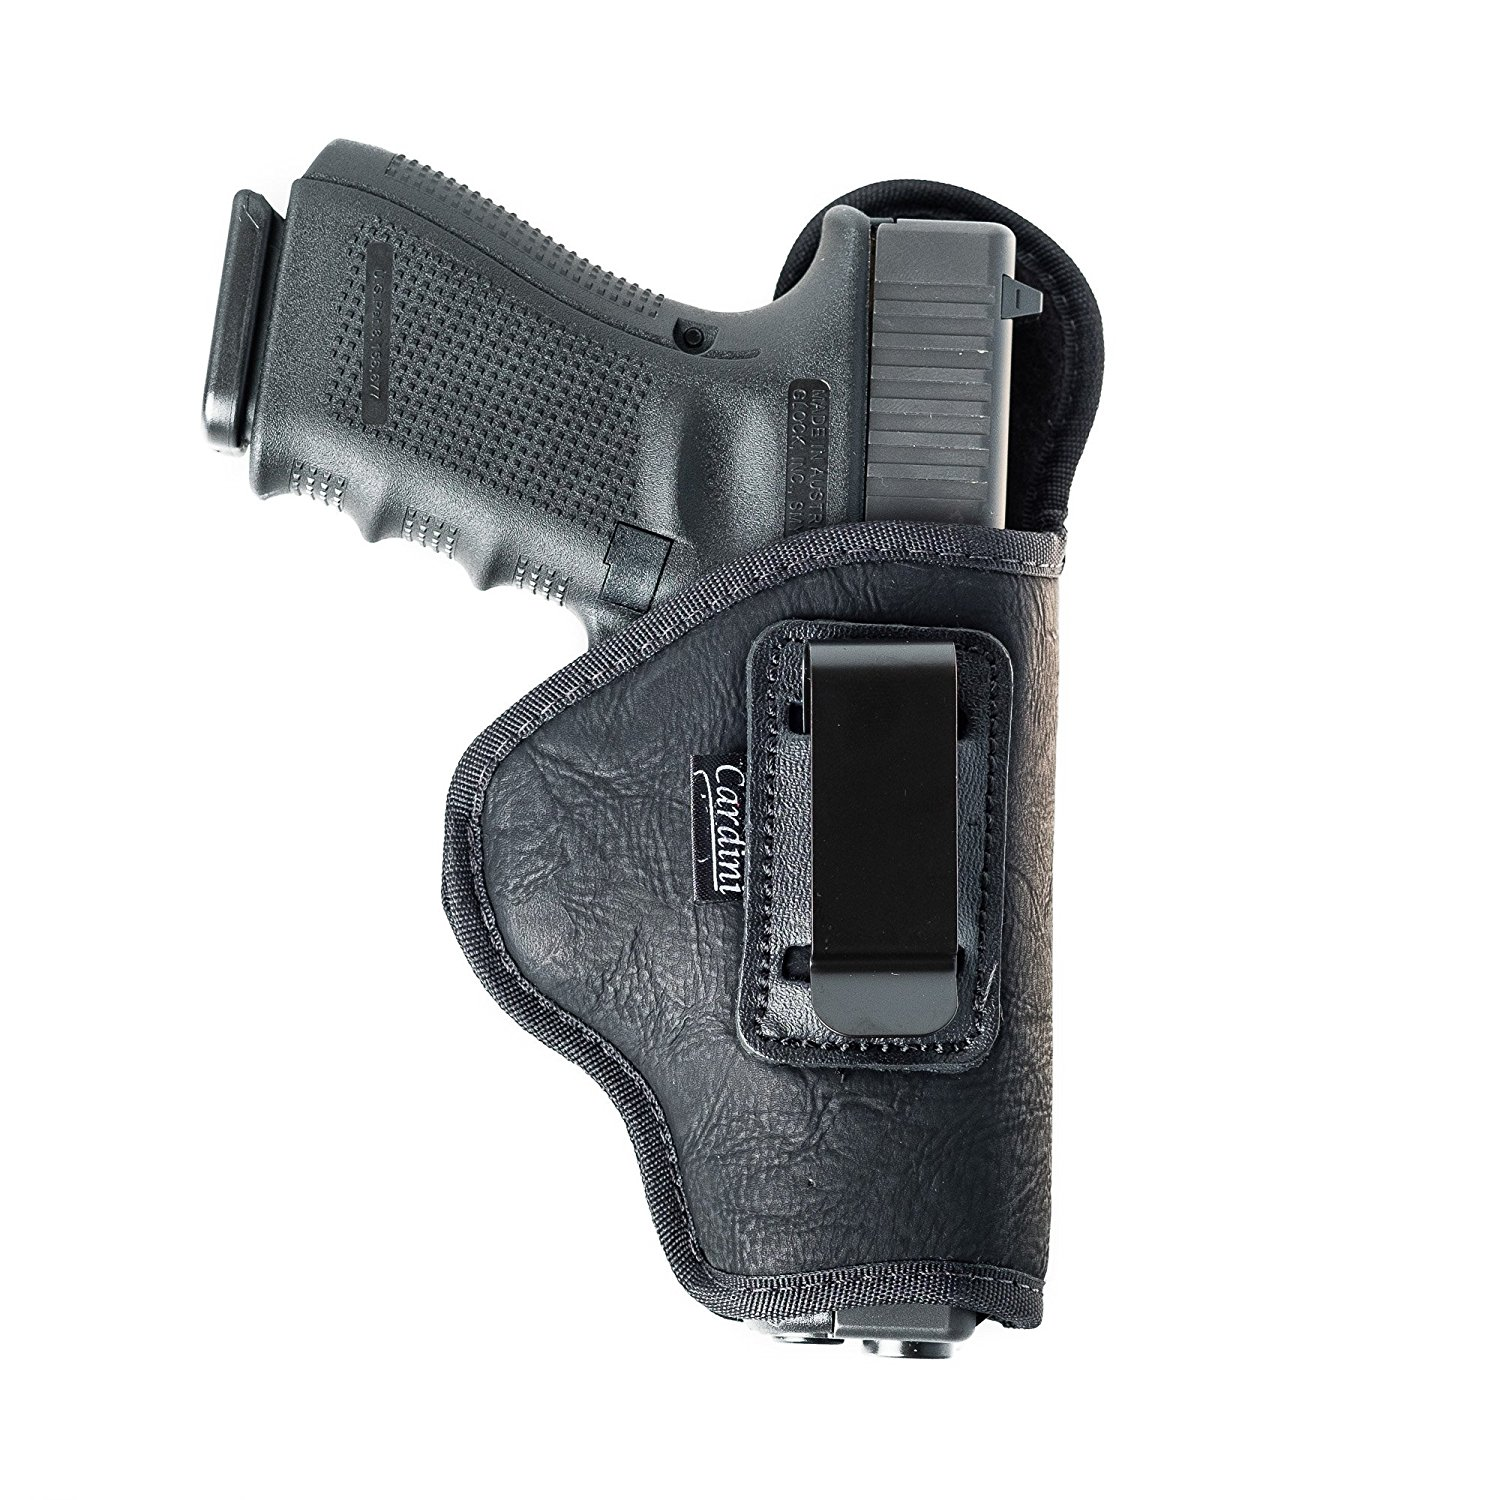 Inside The Waistband Holster For CZ 75C, P-09, 75, 85, SP 01, 97, 97B. Soft Nylon, Comfortable Wear & Durable For Conceal Carry.